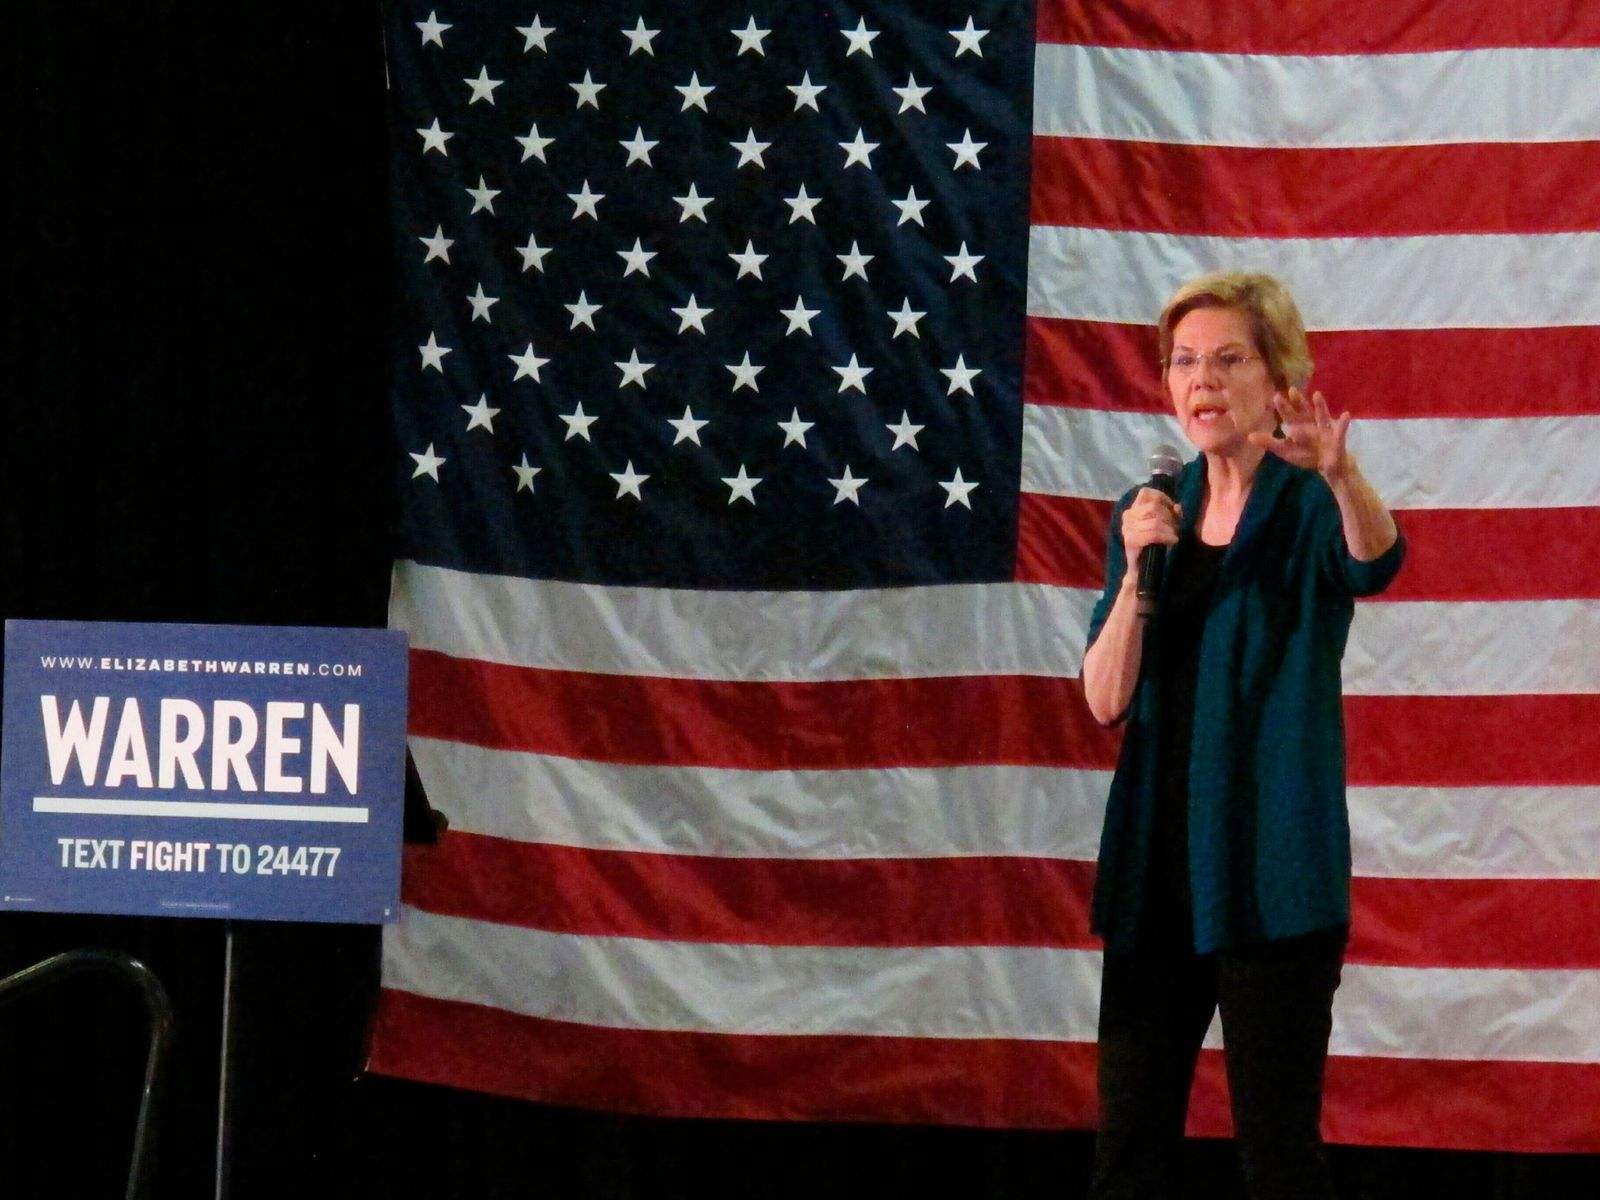 Democratic presidential candidate Elizabeth Warren speaks to a group of about 400 potential voters at a high school on Sunday, March 17, 2019, in Memphis, Tenn. (AP Photo/Adrian Sainz)